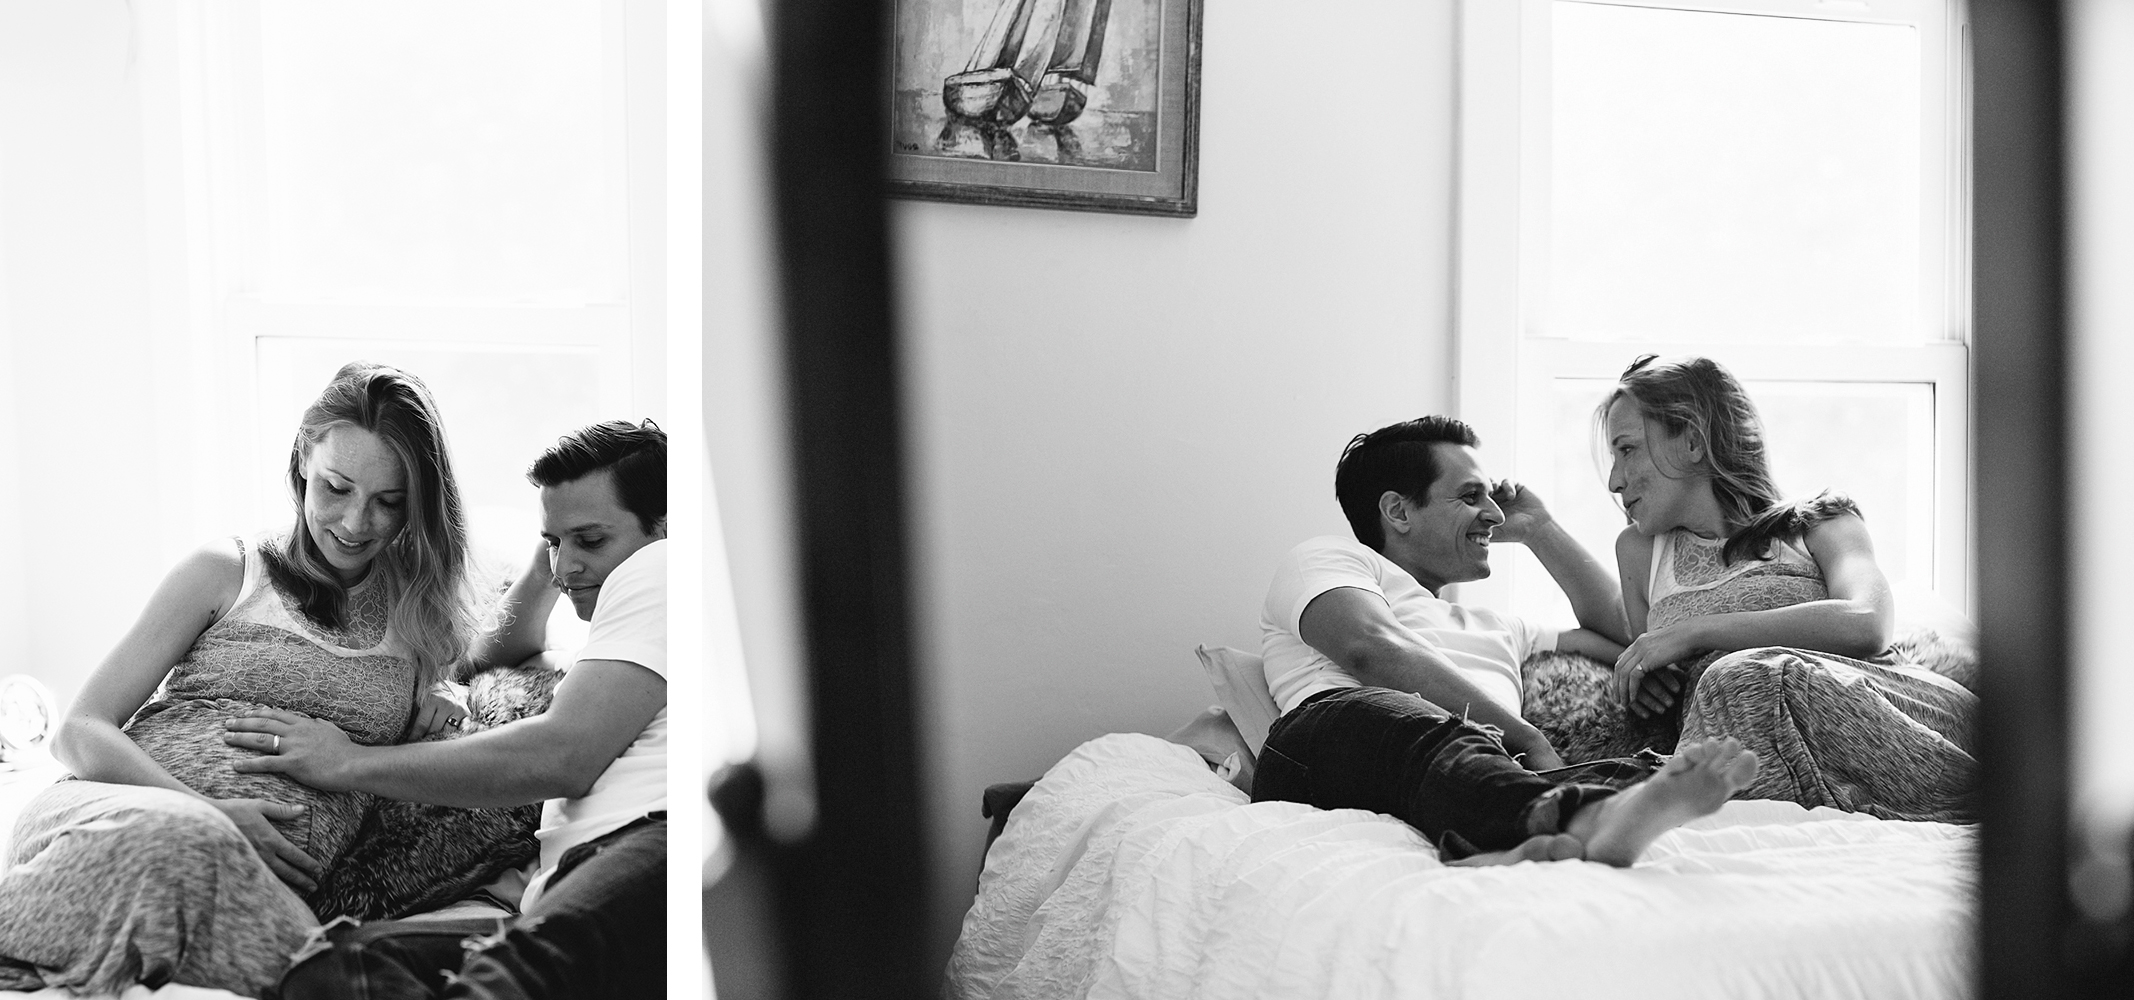 spread-10-hamilton-toronto-inhome-maternity-session-toronto-maternity-photographer-ryanne-hollies-photography-candid-documentary-lifestyle-session-babys-room-documentation-day-in-the-life-portrait-of-parents-bedroom-baby-bump.jpg